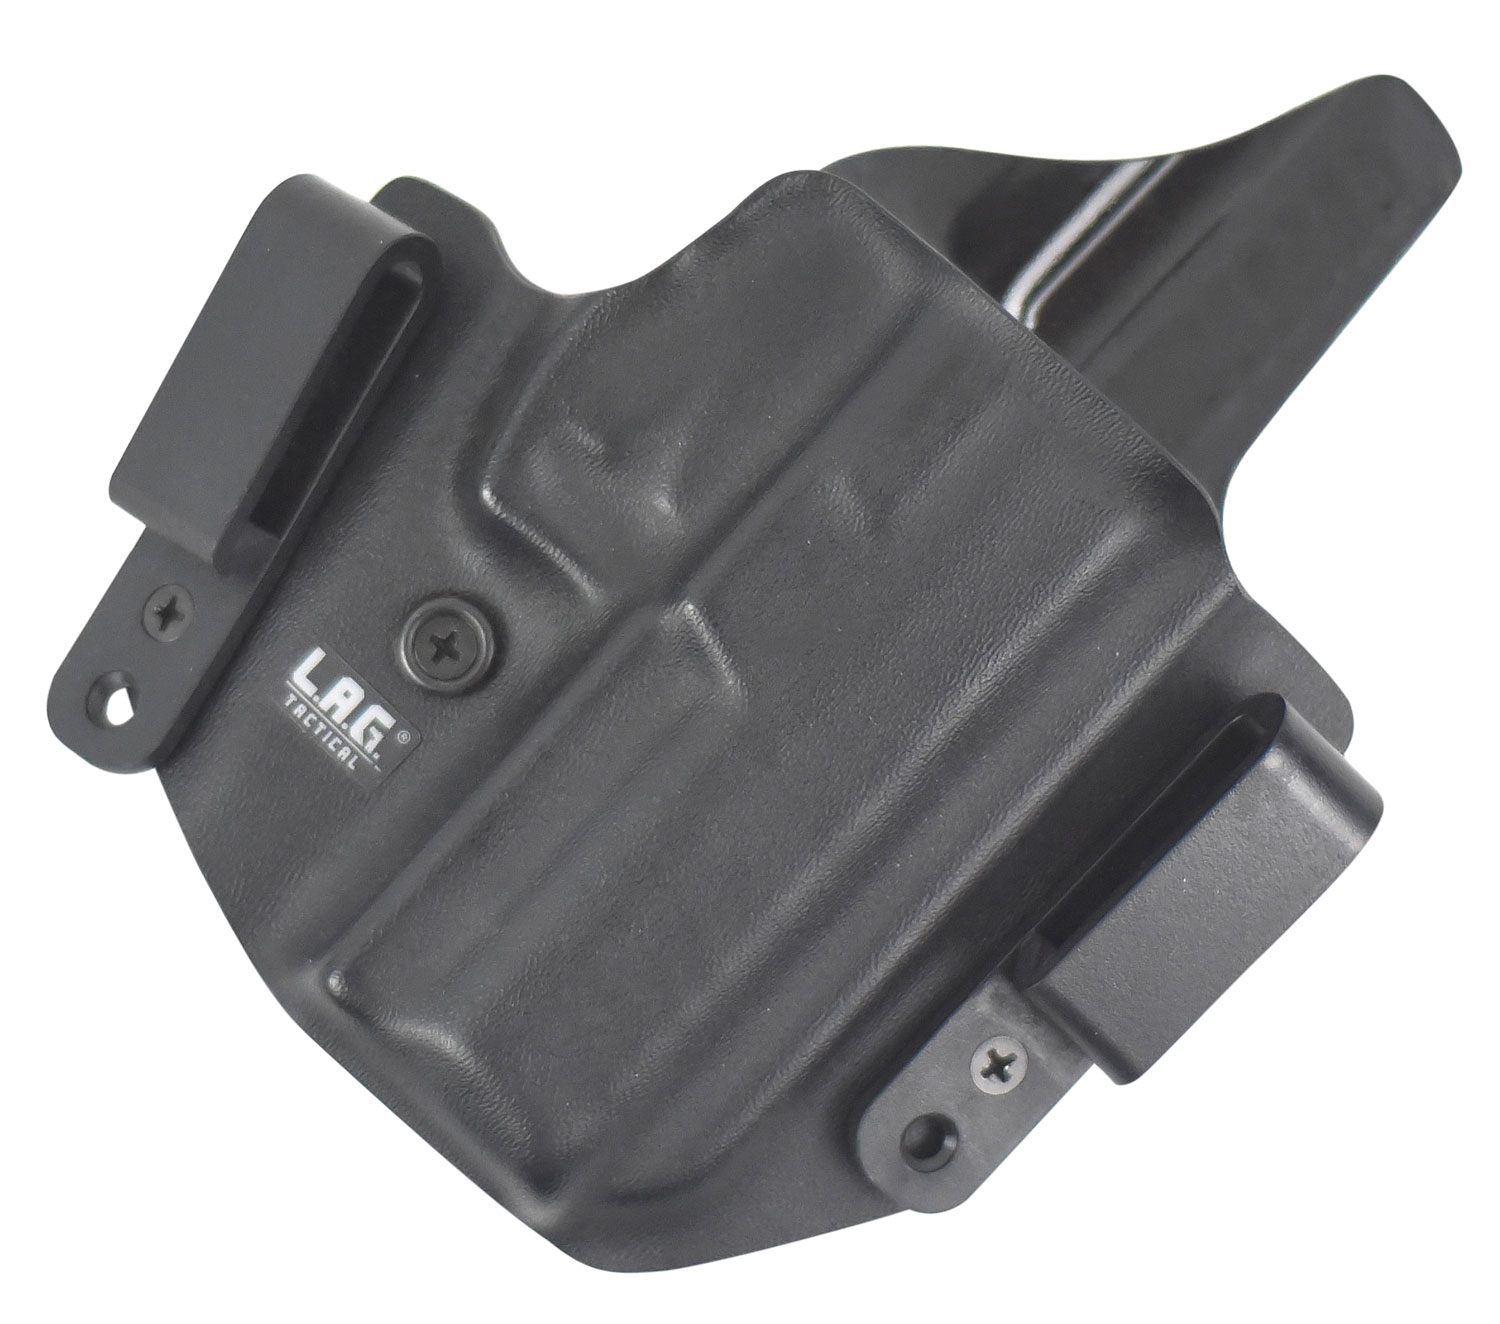 LAG TACTICAL INC 1013 Defender  Inside-Outisde-The-Waistband Holster Glock 17/22/31 Kydex Black